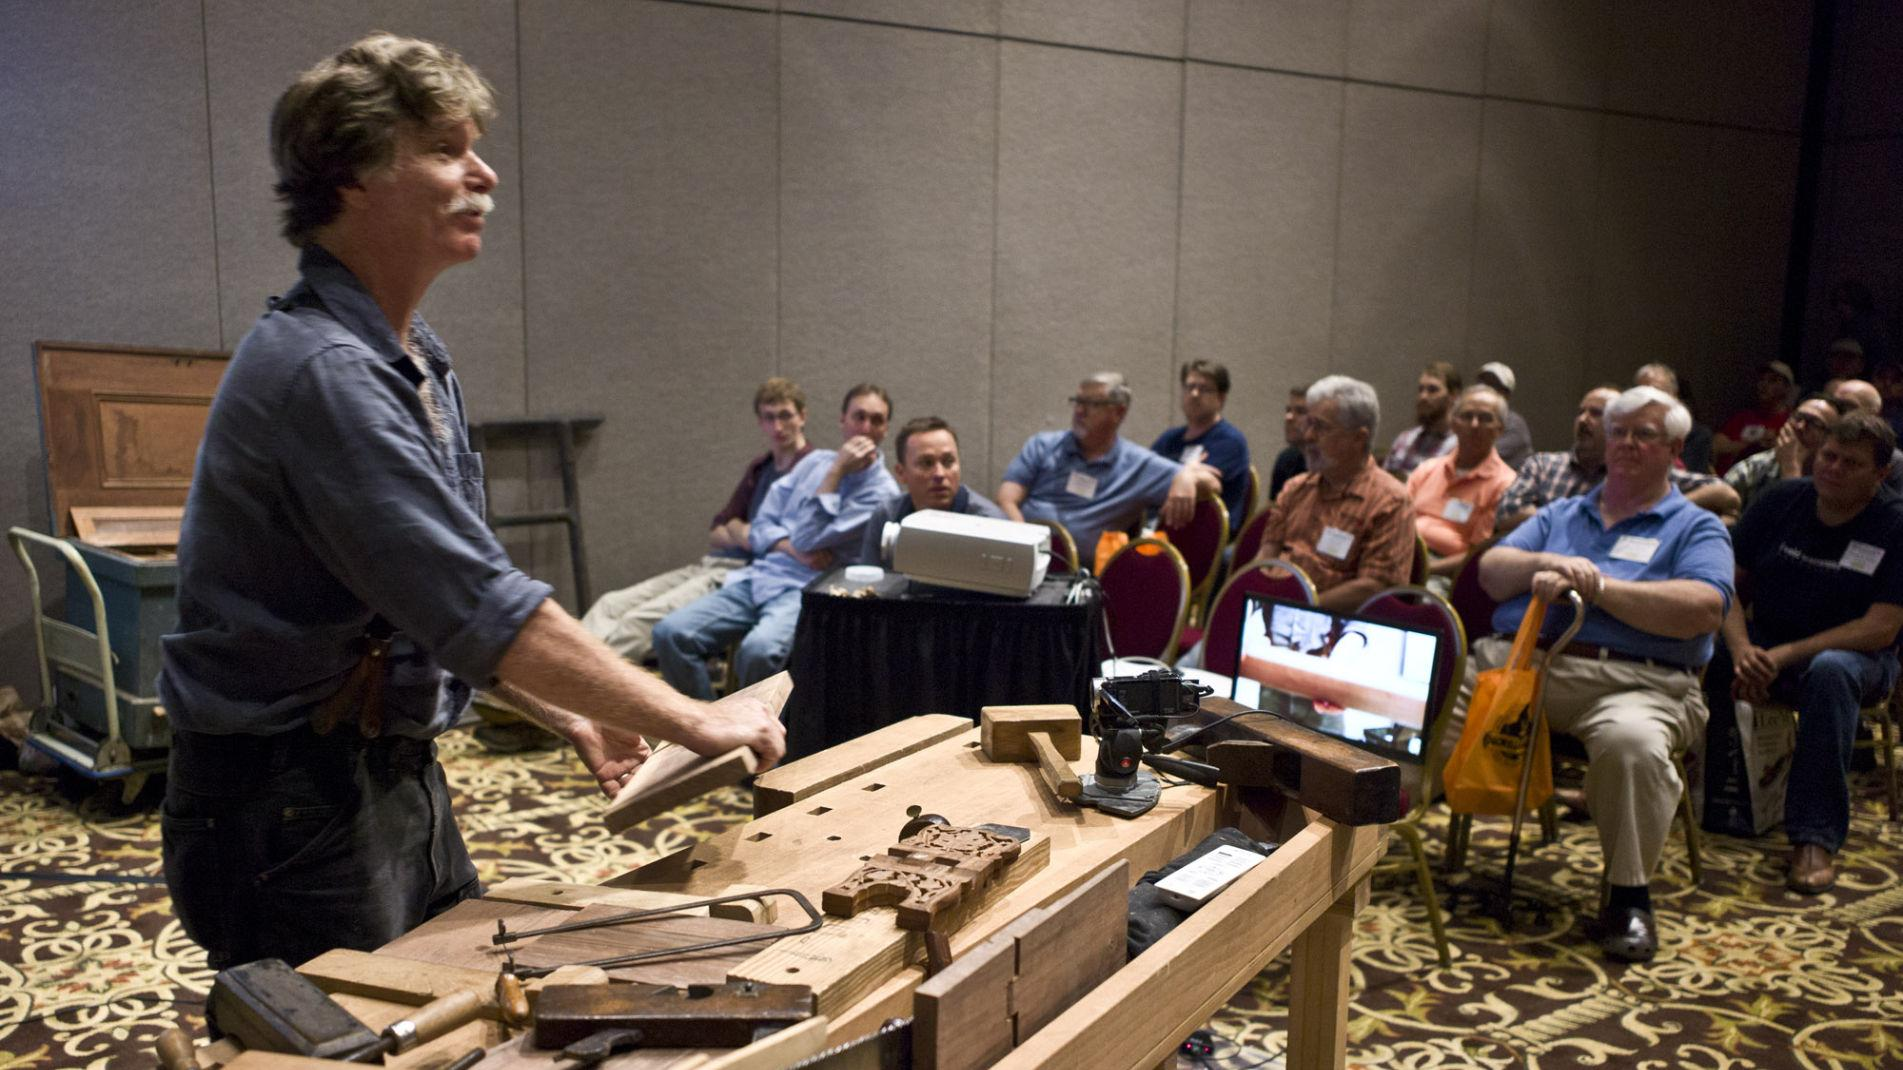 Pbs Star Underhill Attends Woodworking Gathering Local News Journalnow Com